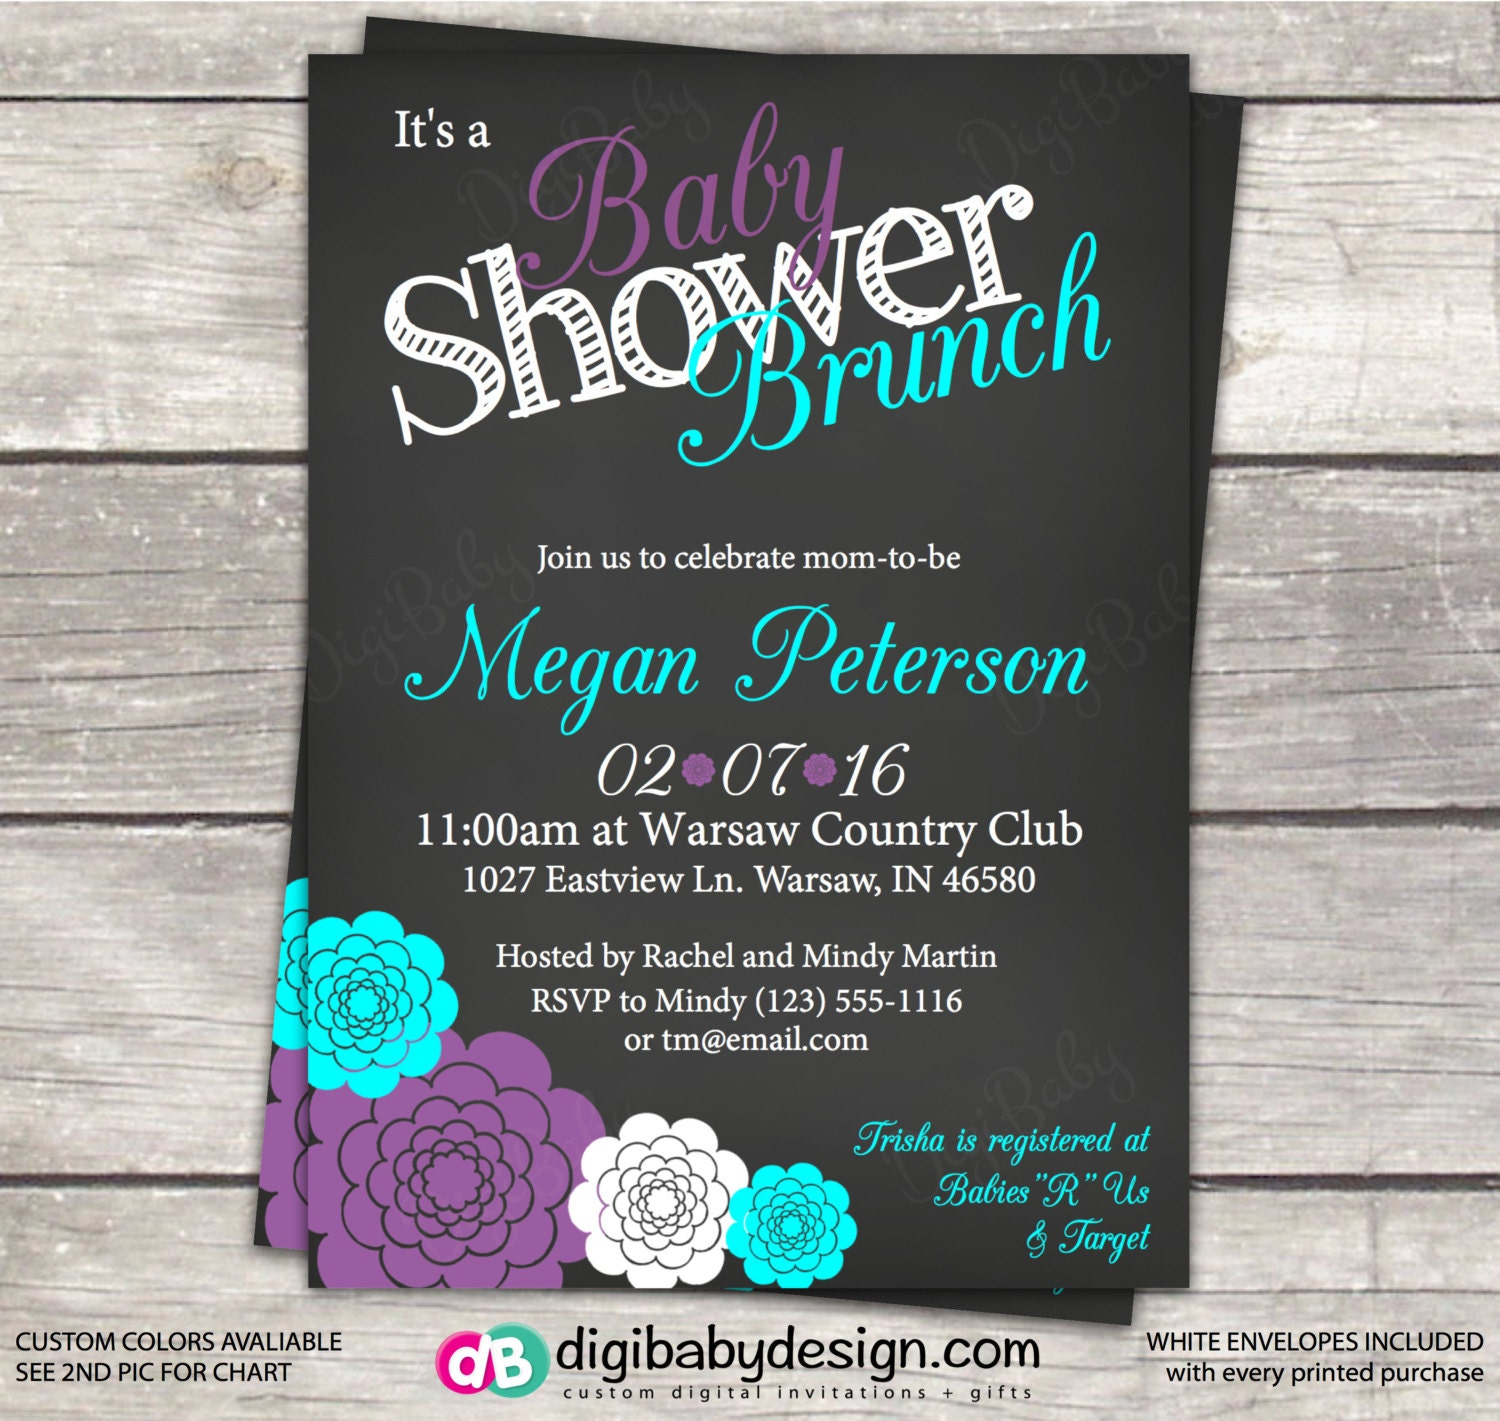 Baby Shower Brunch Invitation Gray Teal And Purple Flowers Etsy